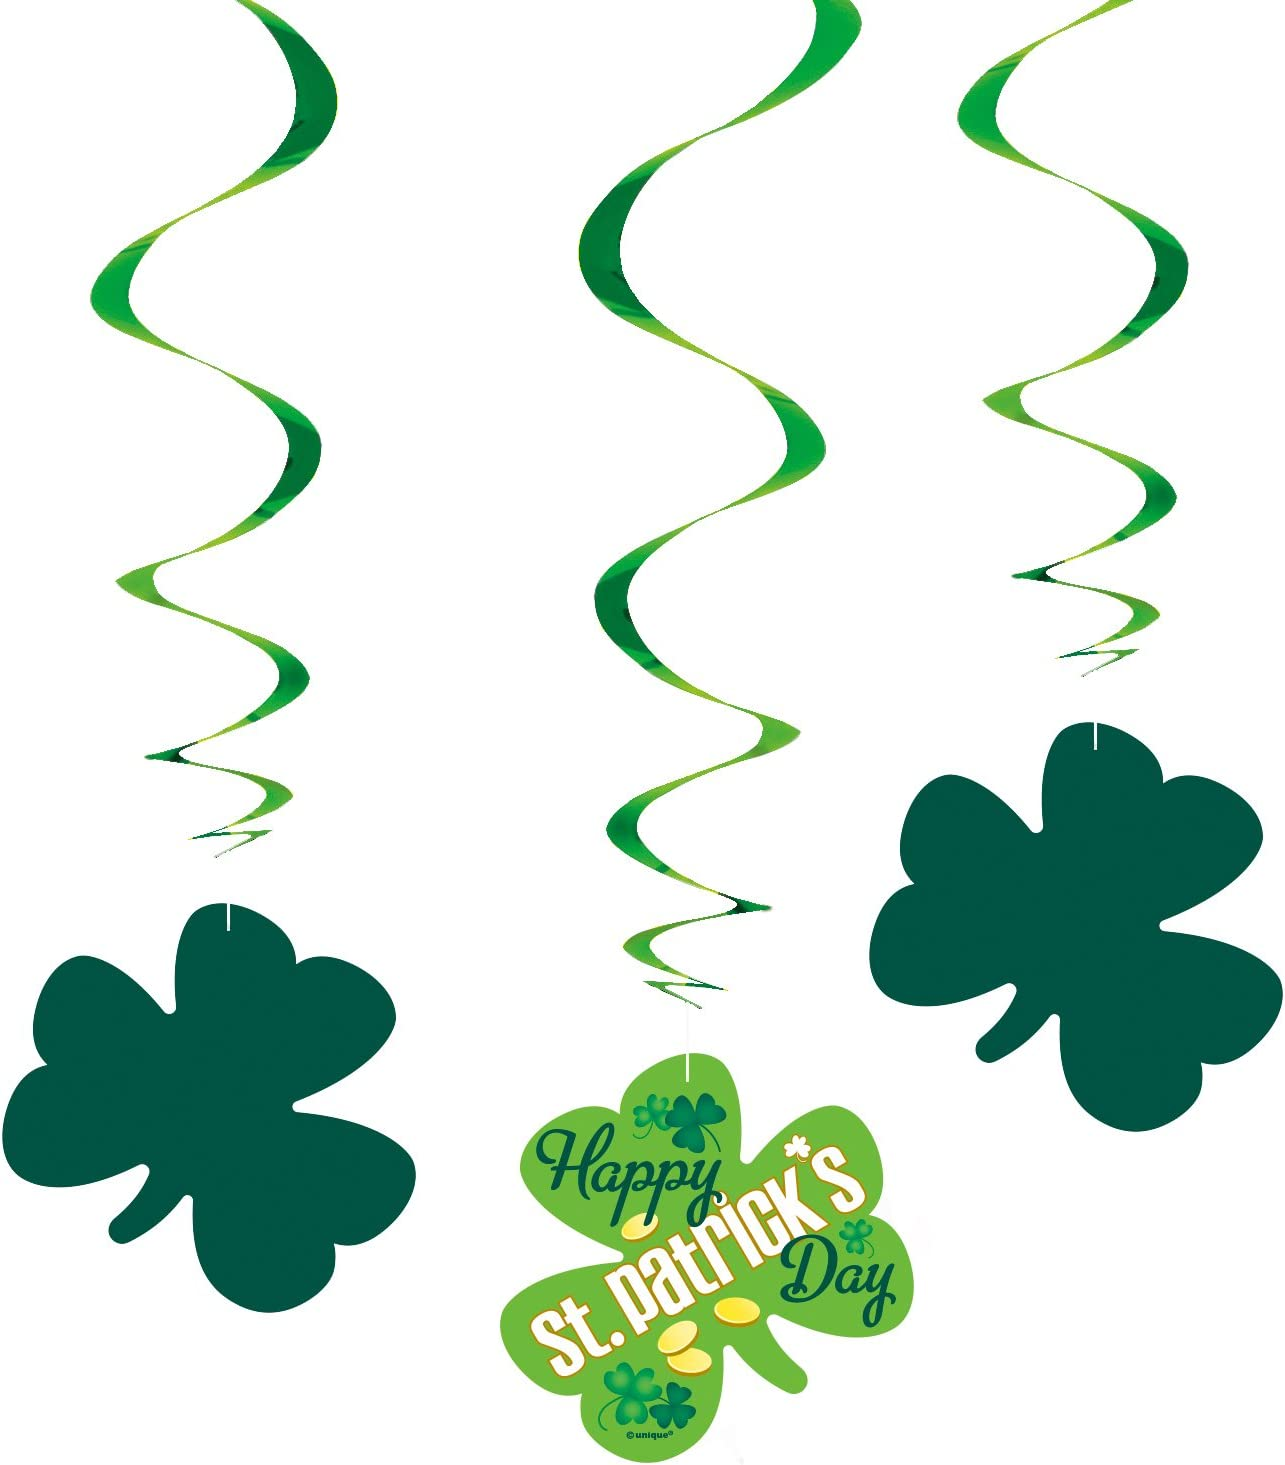 A Tuoyi St Patricks Day Decorations,Lucky Irish Shamrock Banner St.Patricks Day Decor Irish Party Supplies